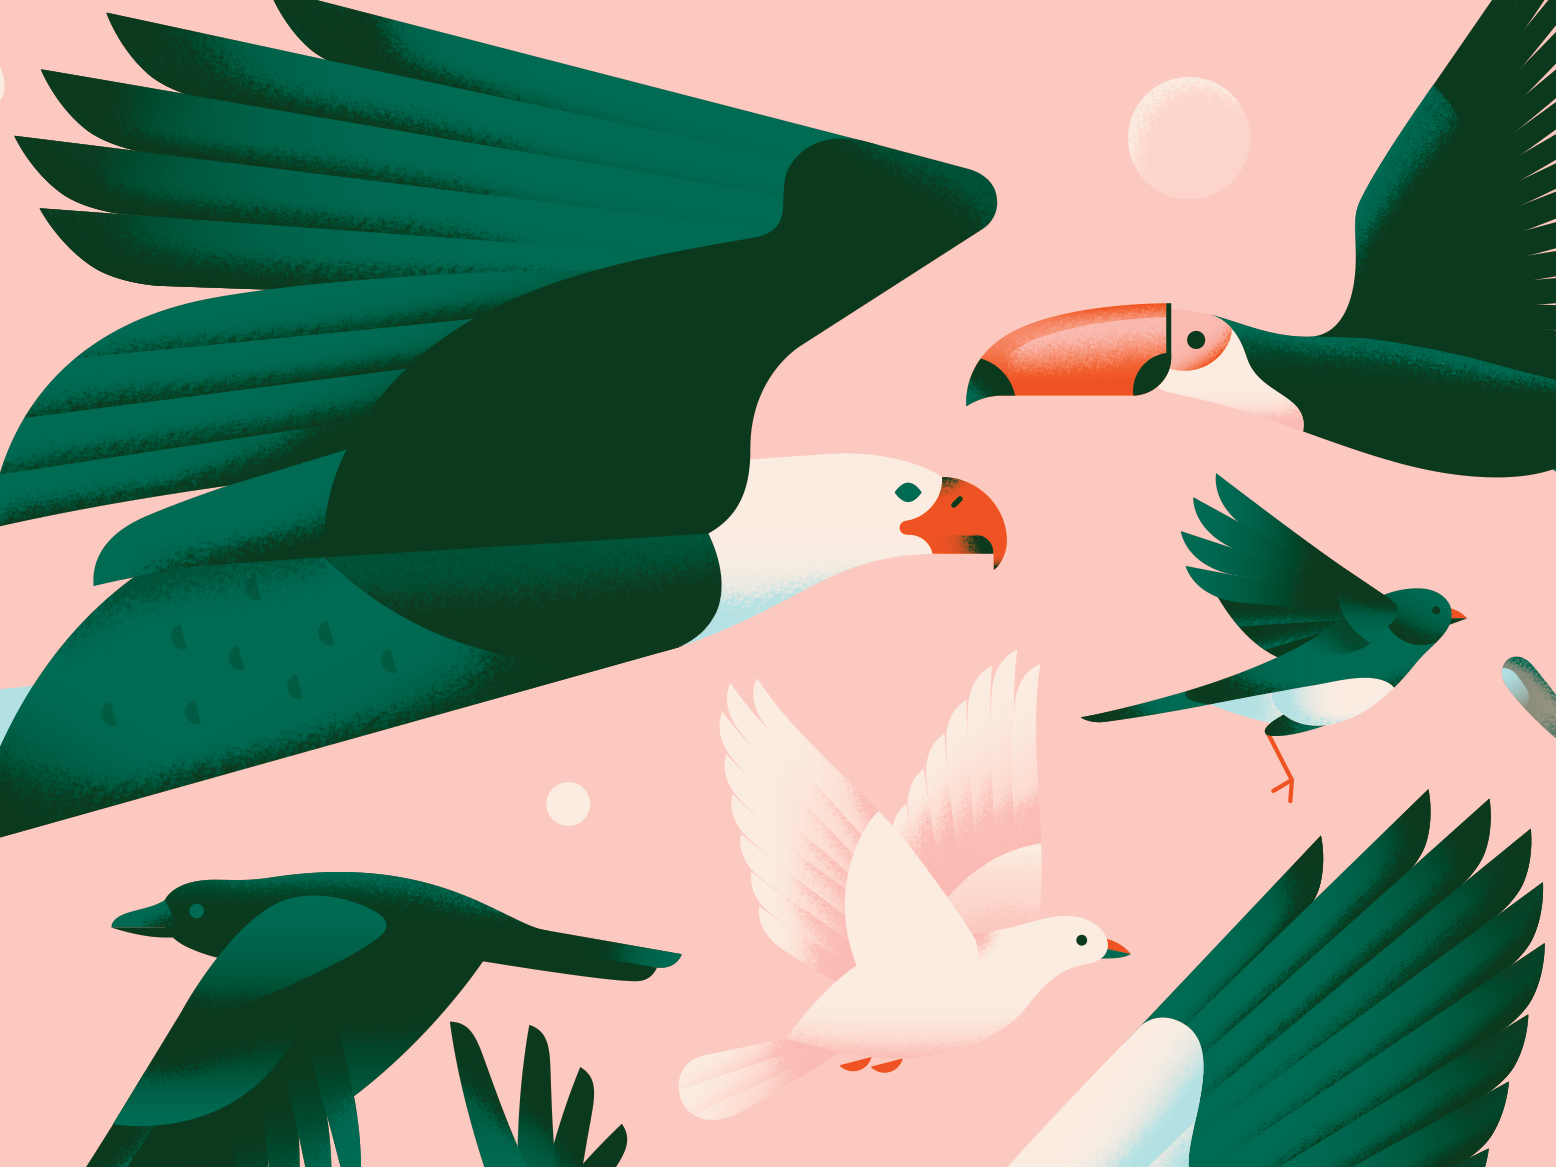 Birds dove bright collage pattern wings flying crow toucan birds bird pigeon eagle animal pastel texture gradient flat vector illustration